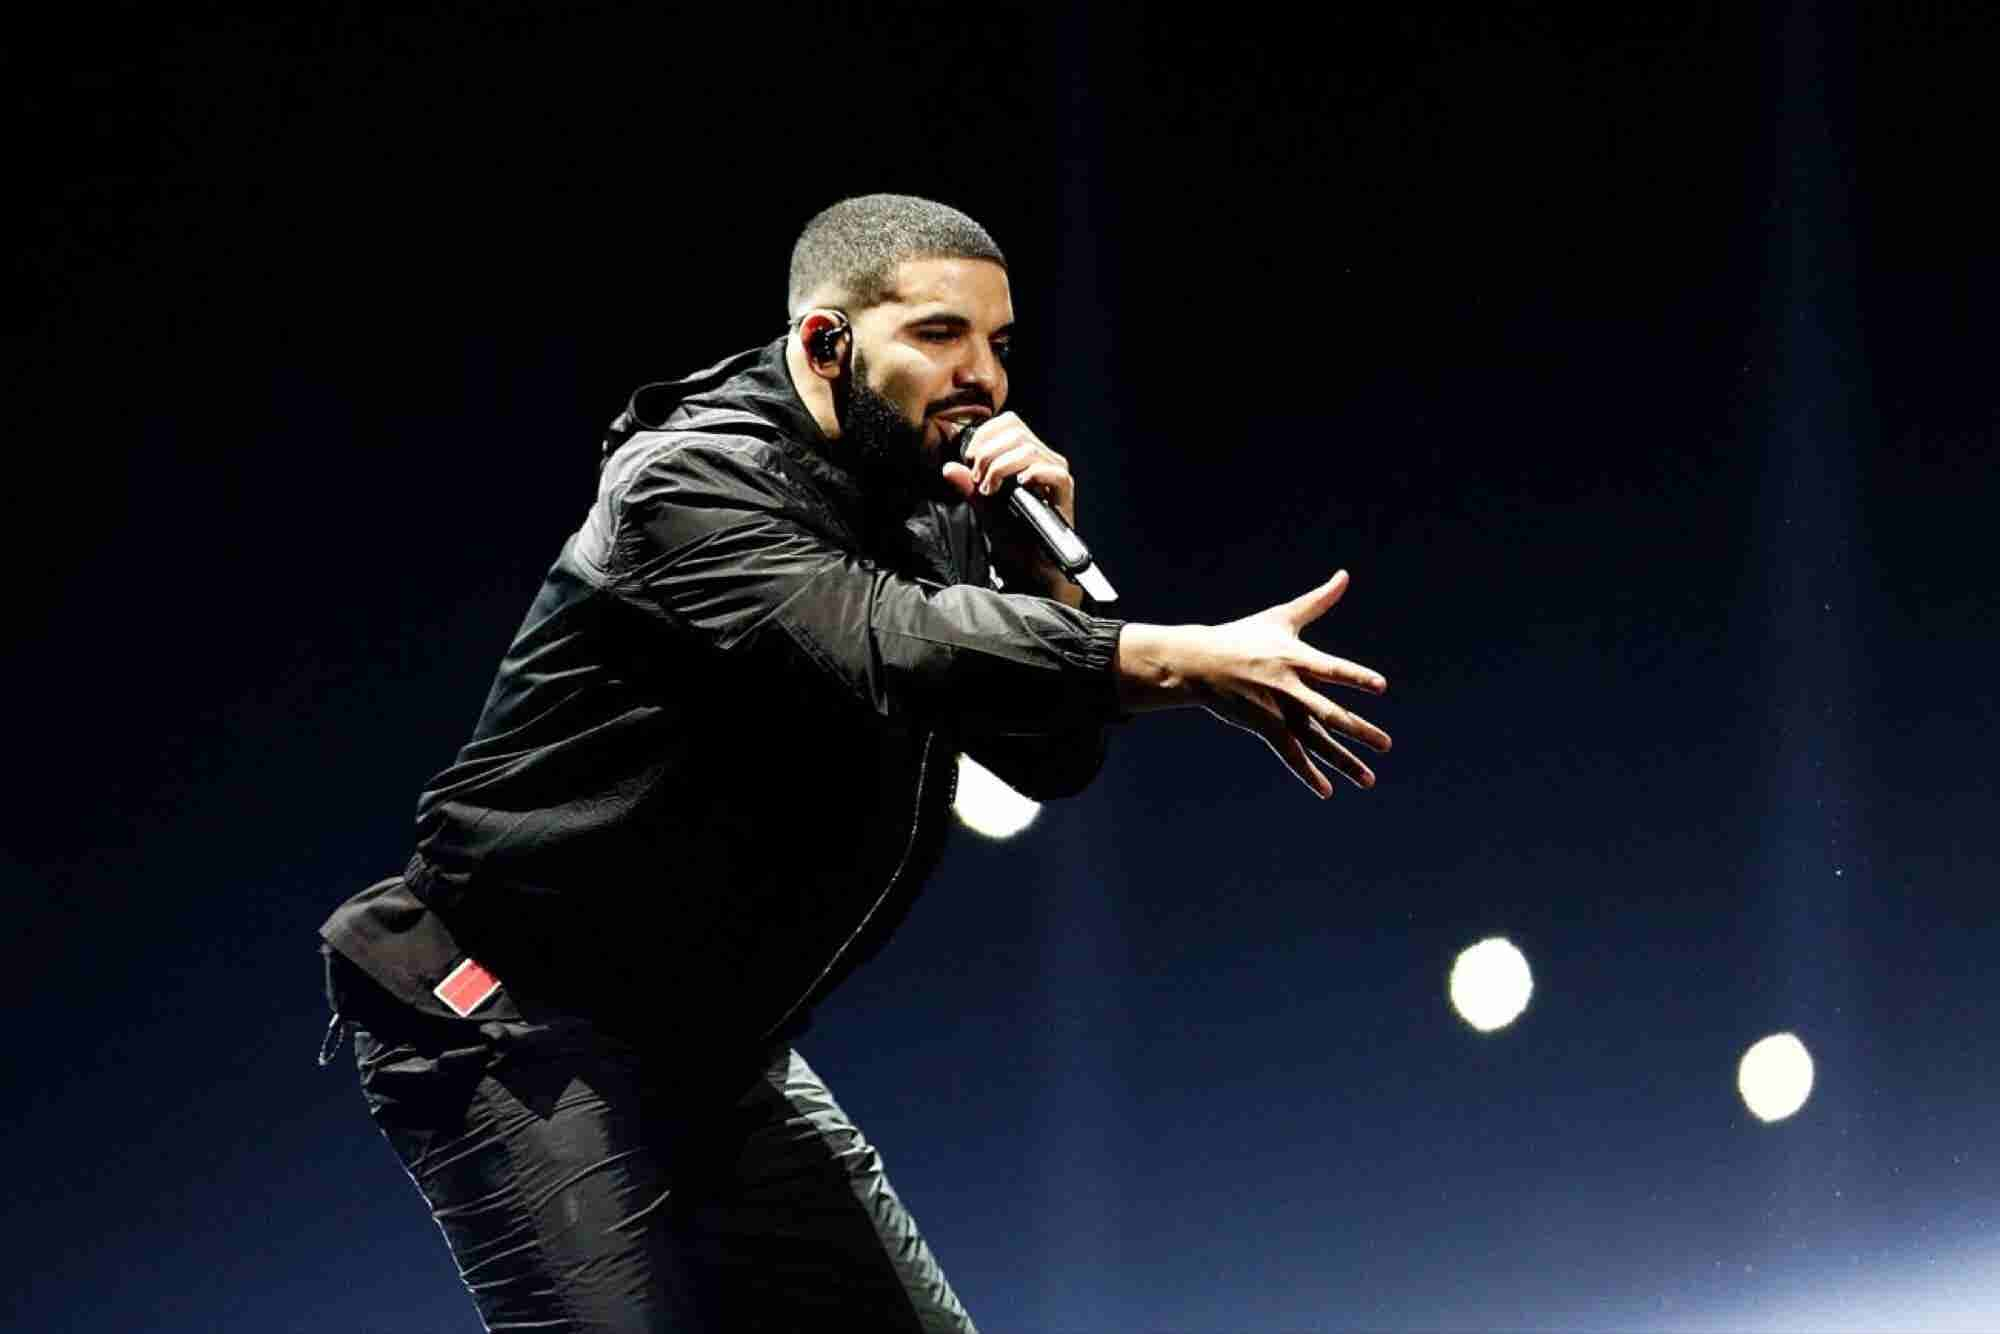 Surprisingly, Drake's Lyrics Provide Solid Lessons for Entrepreneurs